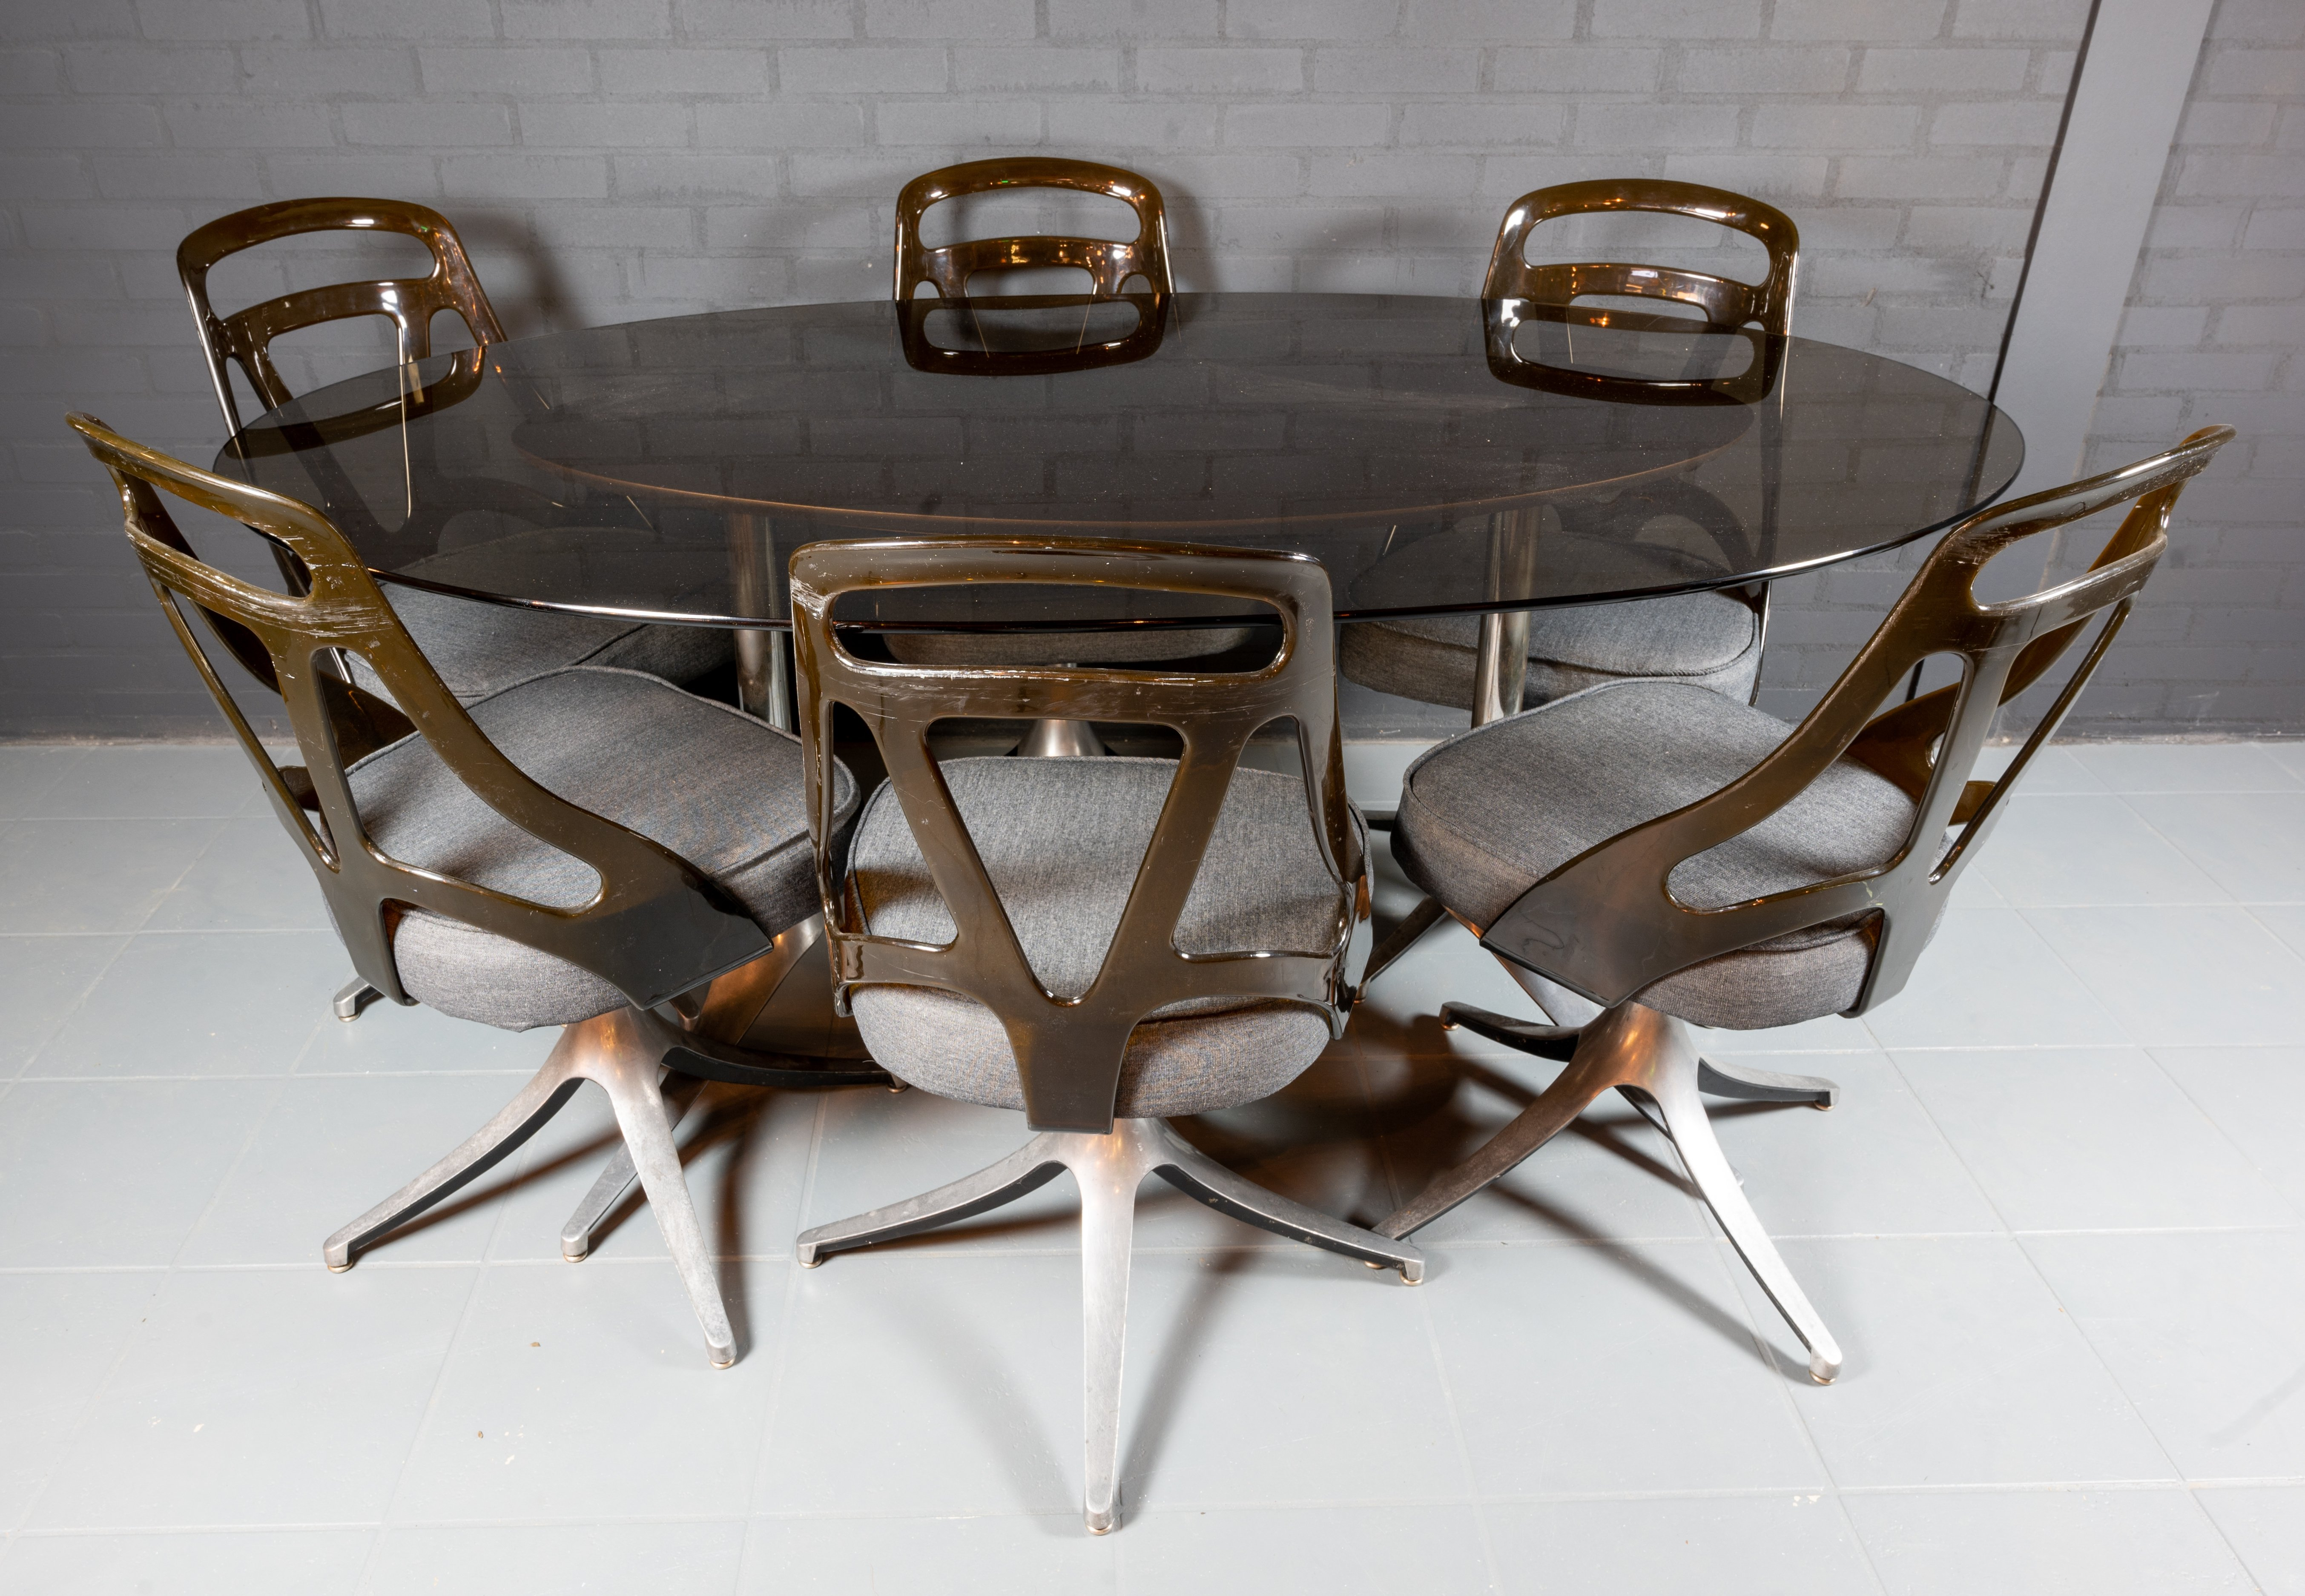 Retro Dining Set With 6 Chairs By Chromcraft Usa 1970s 147822